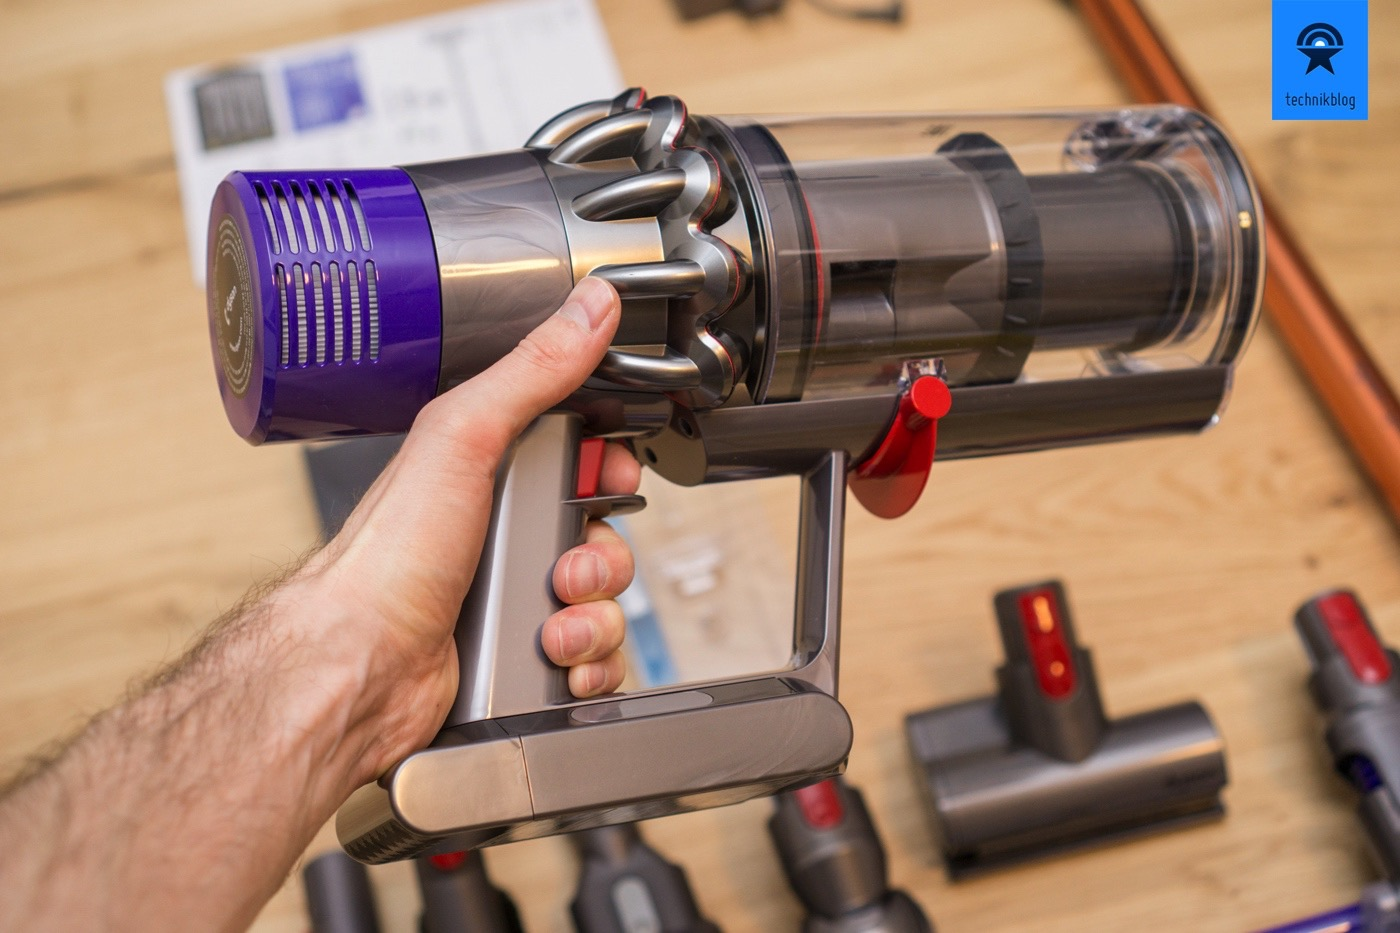 testbericht dyson cyclone v10 akkusauger mit viel power. Black Bedroom Furniture Sets. Home Design Ideas